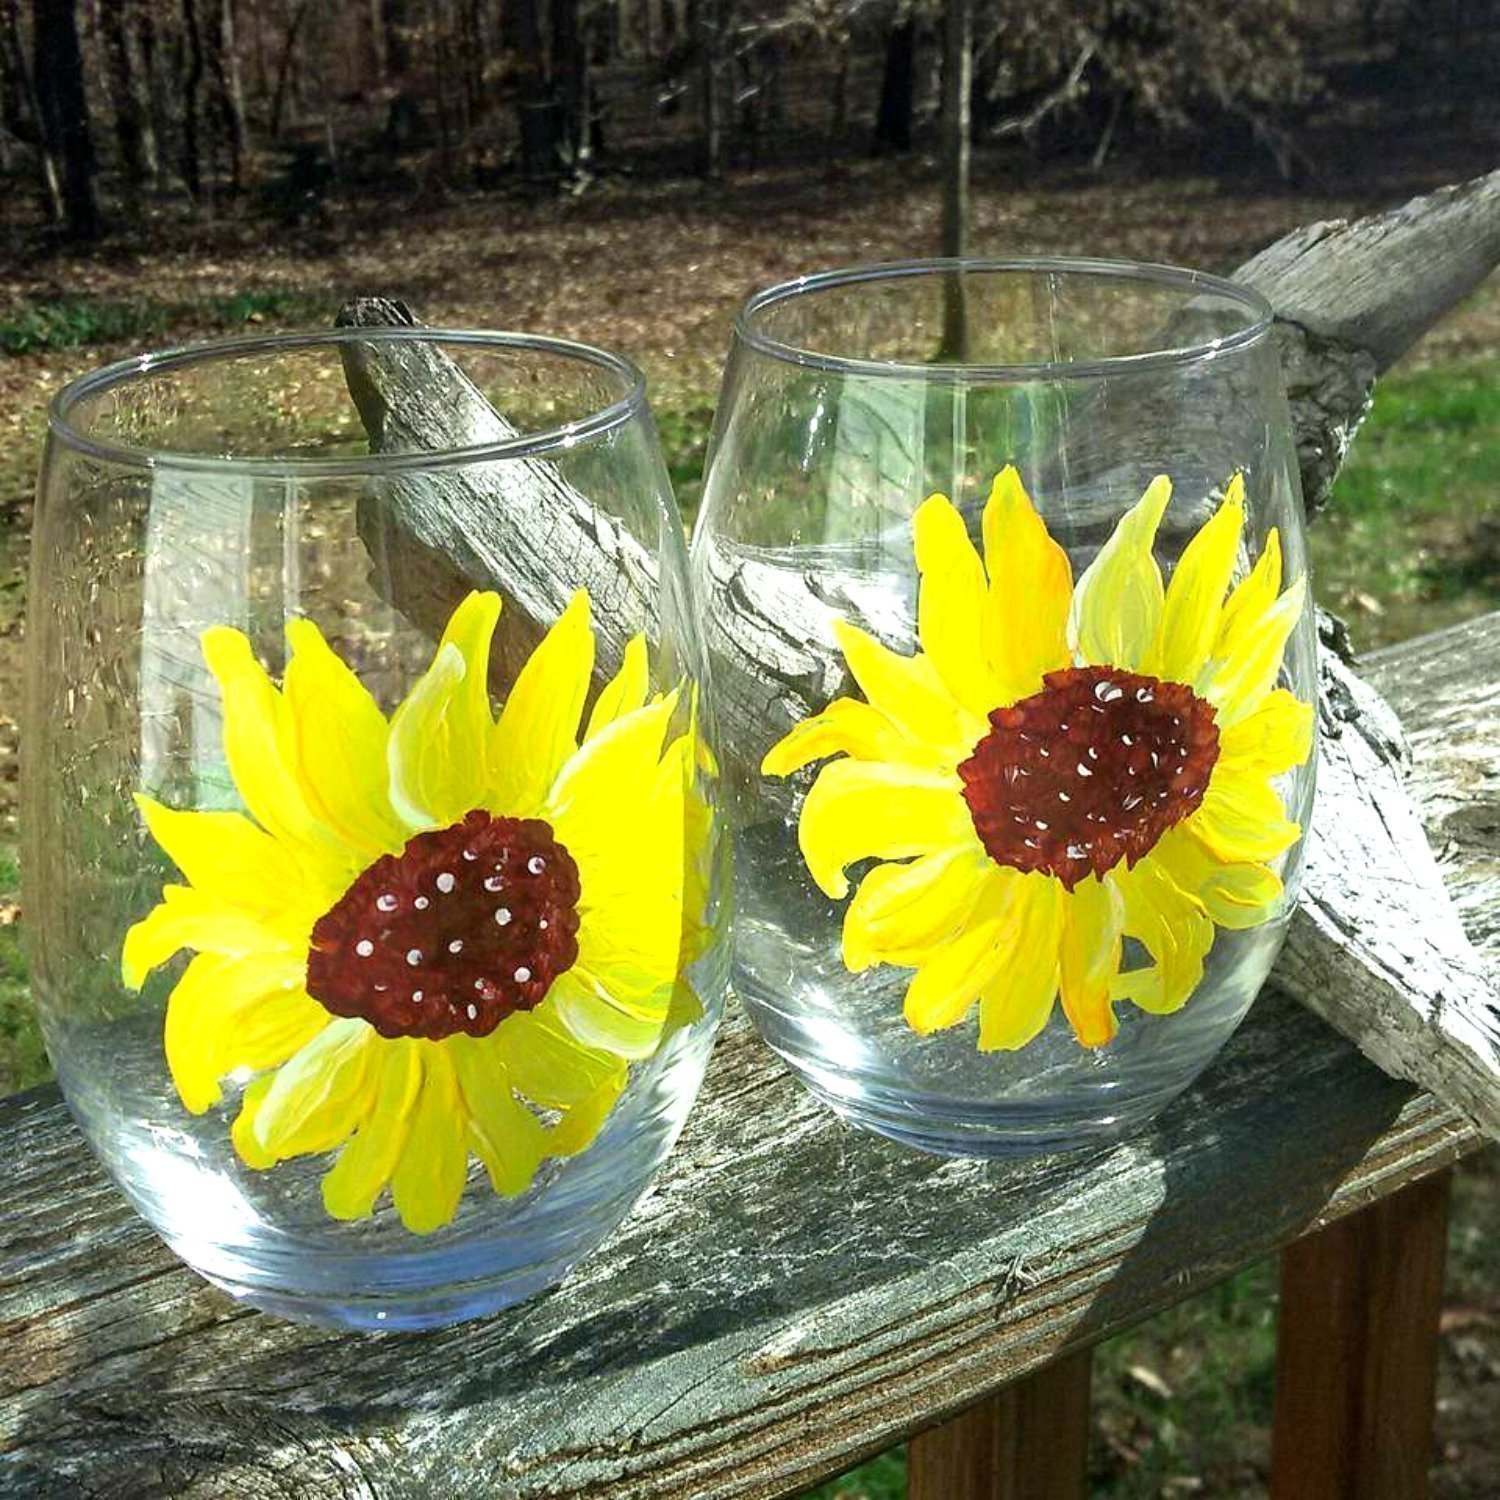 Yellow Sunflower Hand Painted Stemless Wine Glasses (Set Of 2), Floral Kitchen Decor by Atkinson Creations (Image #2)